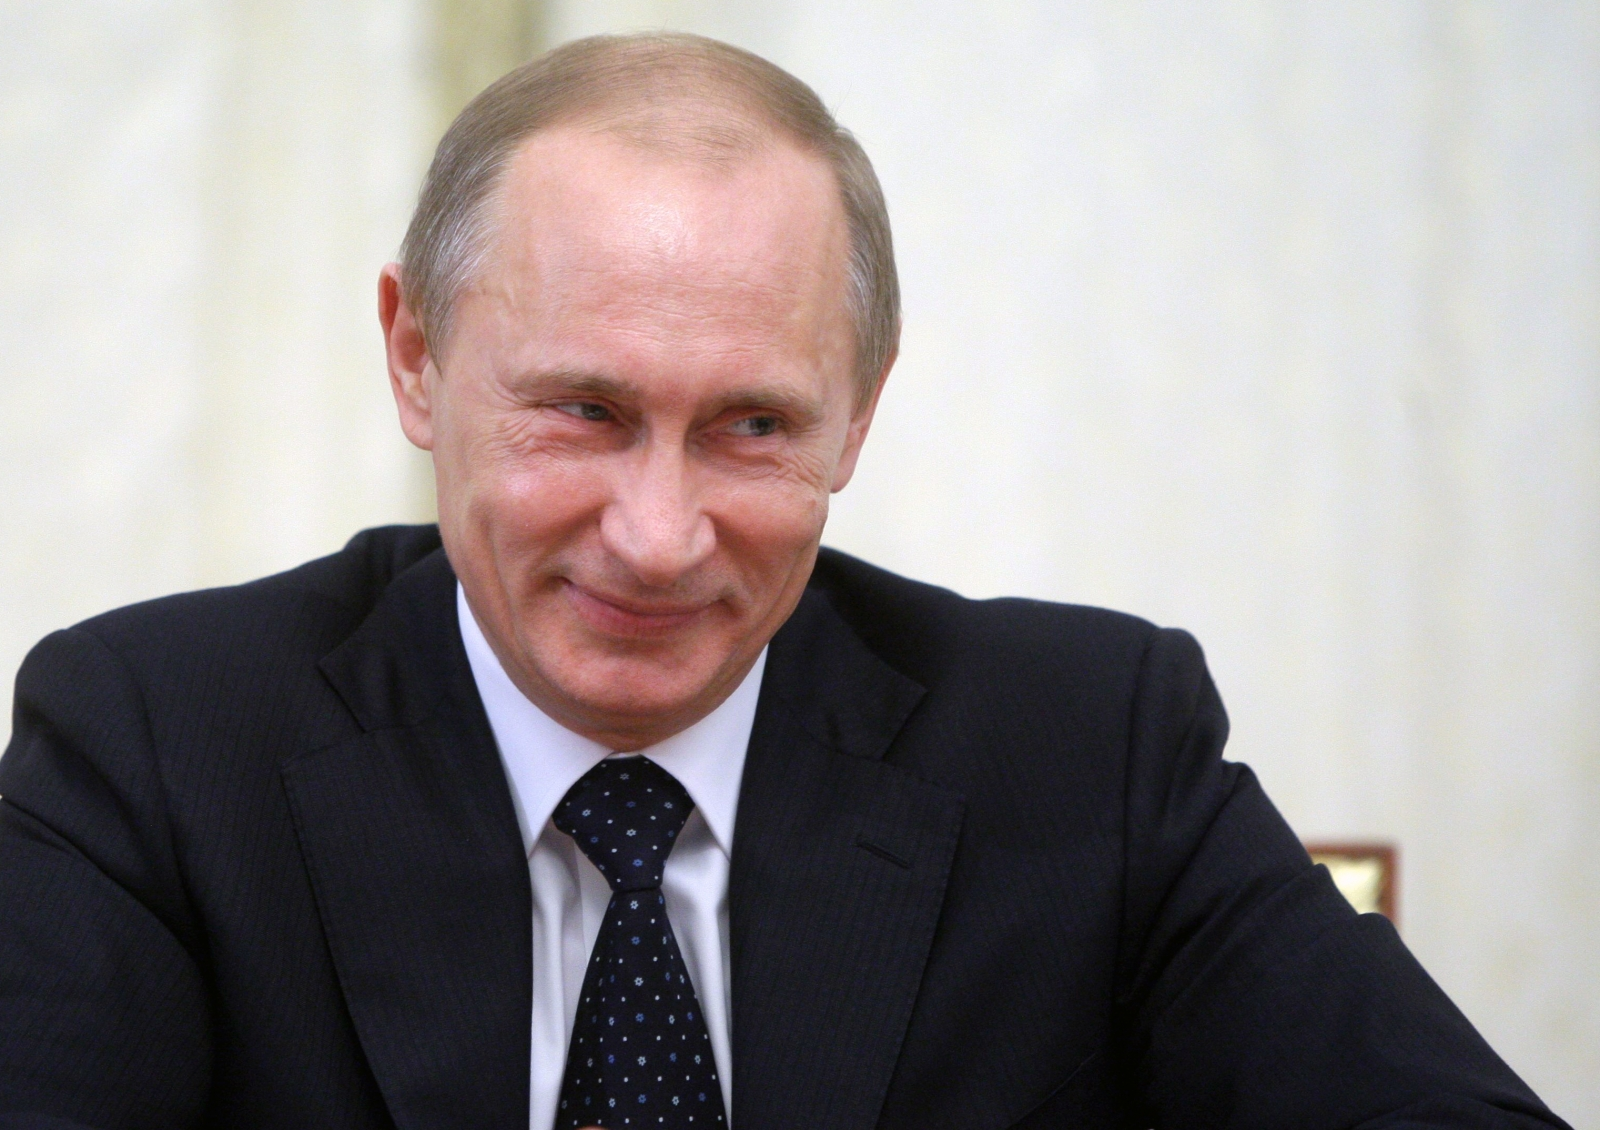 Vladimir Putin refers to 'territories now called Ukraine ...